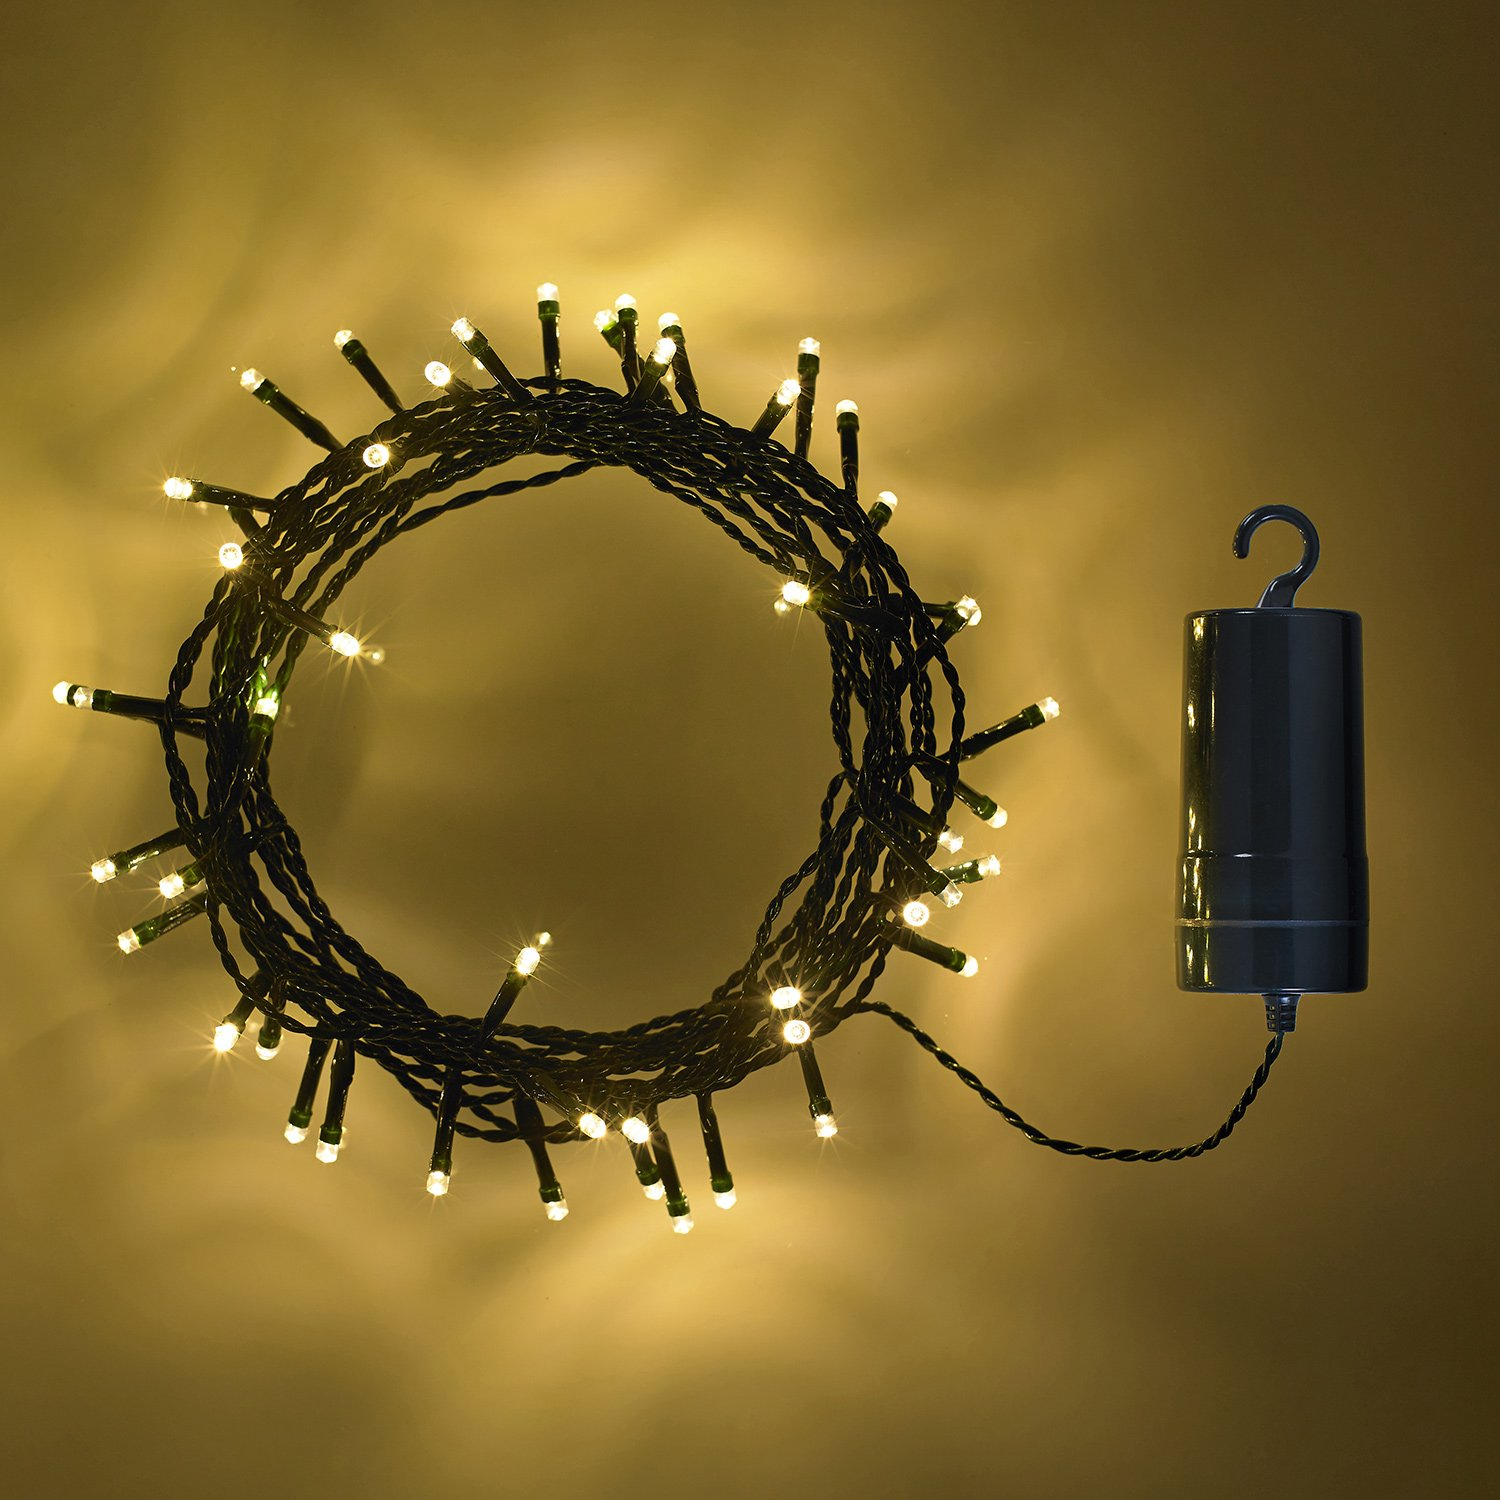 100 Multi Coloured LED Outdoor Battery Operated Fairy Lights on Green Cable by Lights4fun